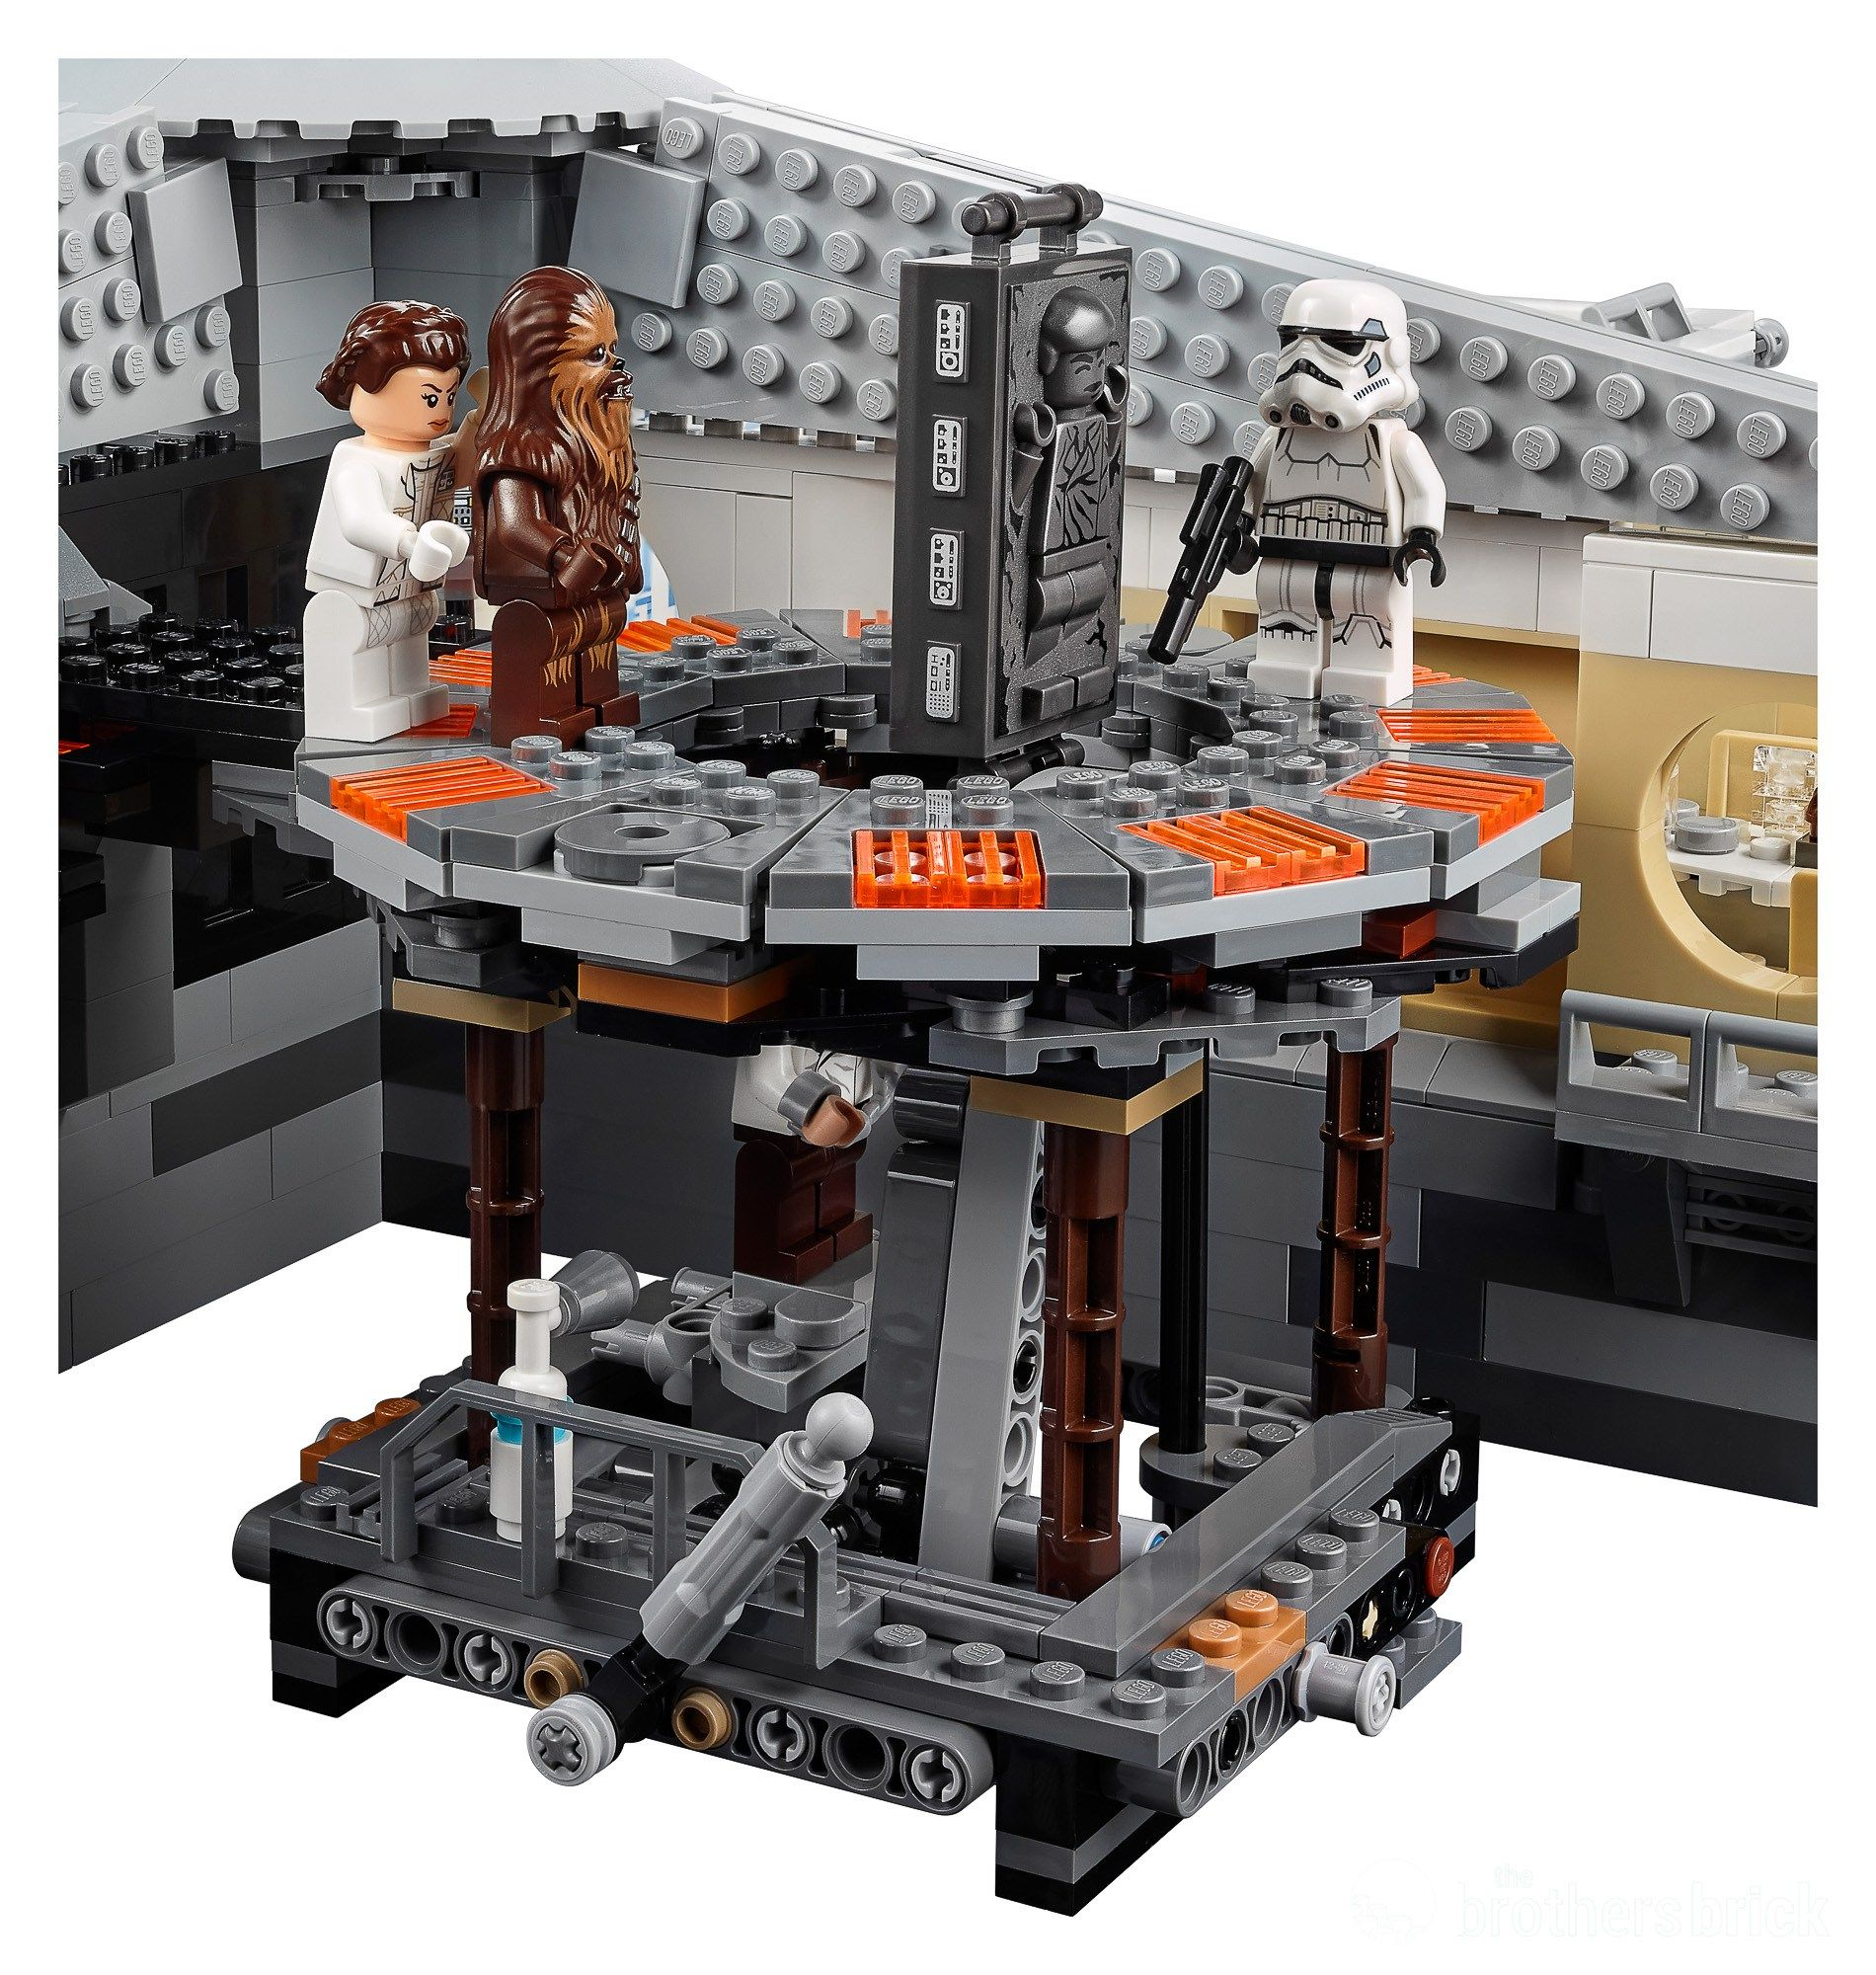 Lego Reveals 75222 Betrayal At Cloud City The First Set In The Star Wars Master Builder Series News Lego Star Wars Cloud City Lego Star Wars Sets